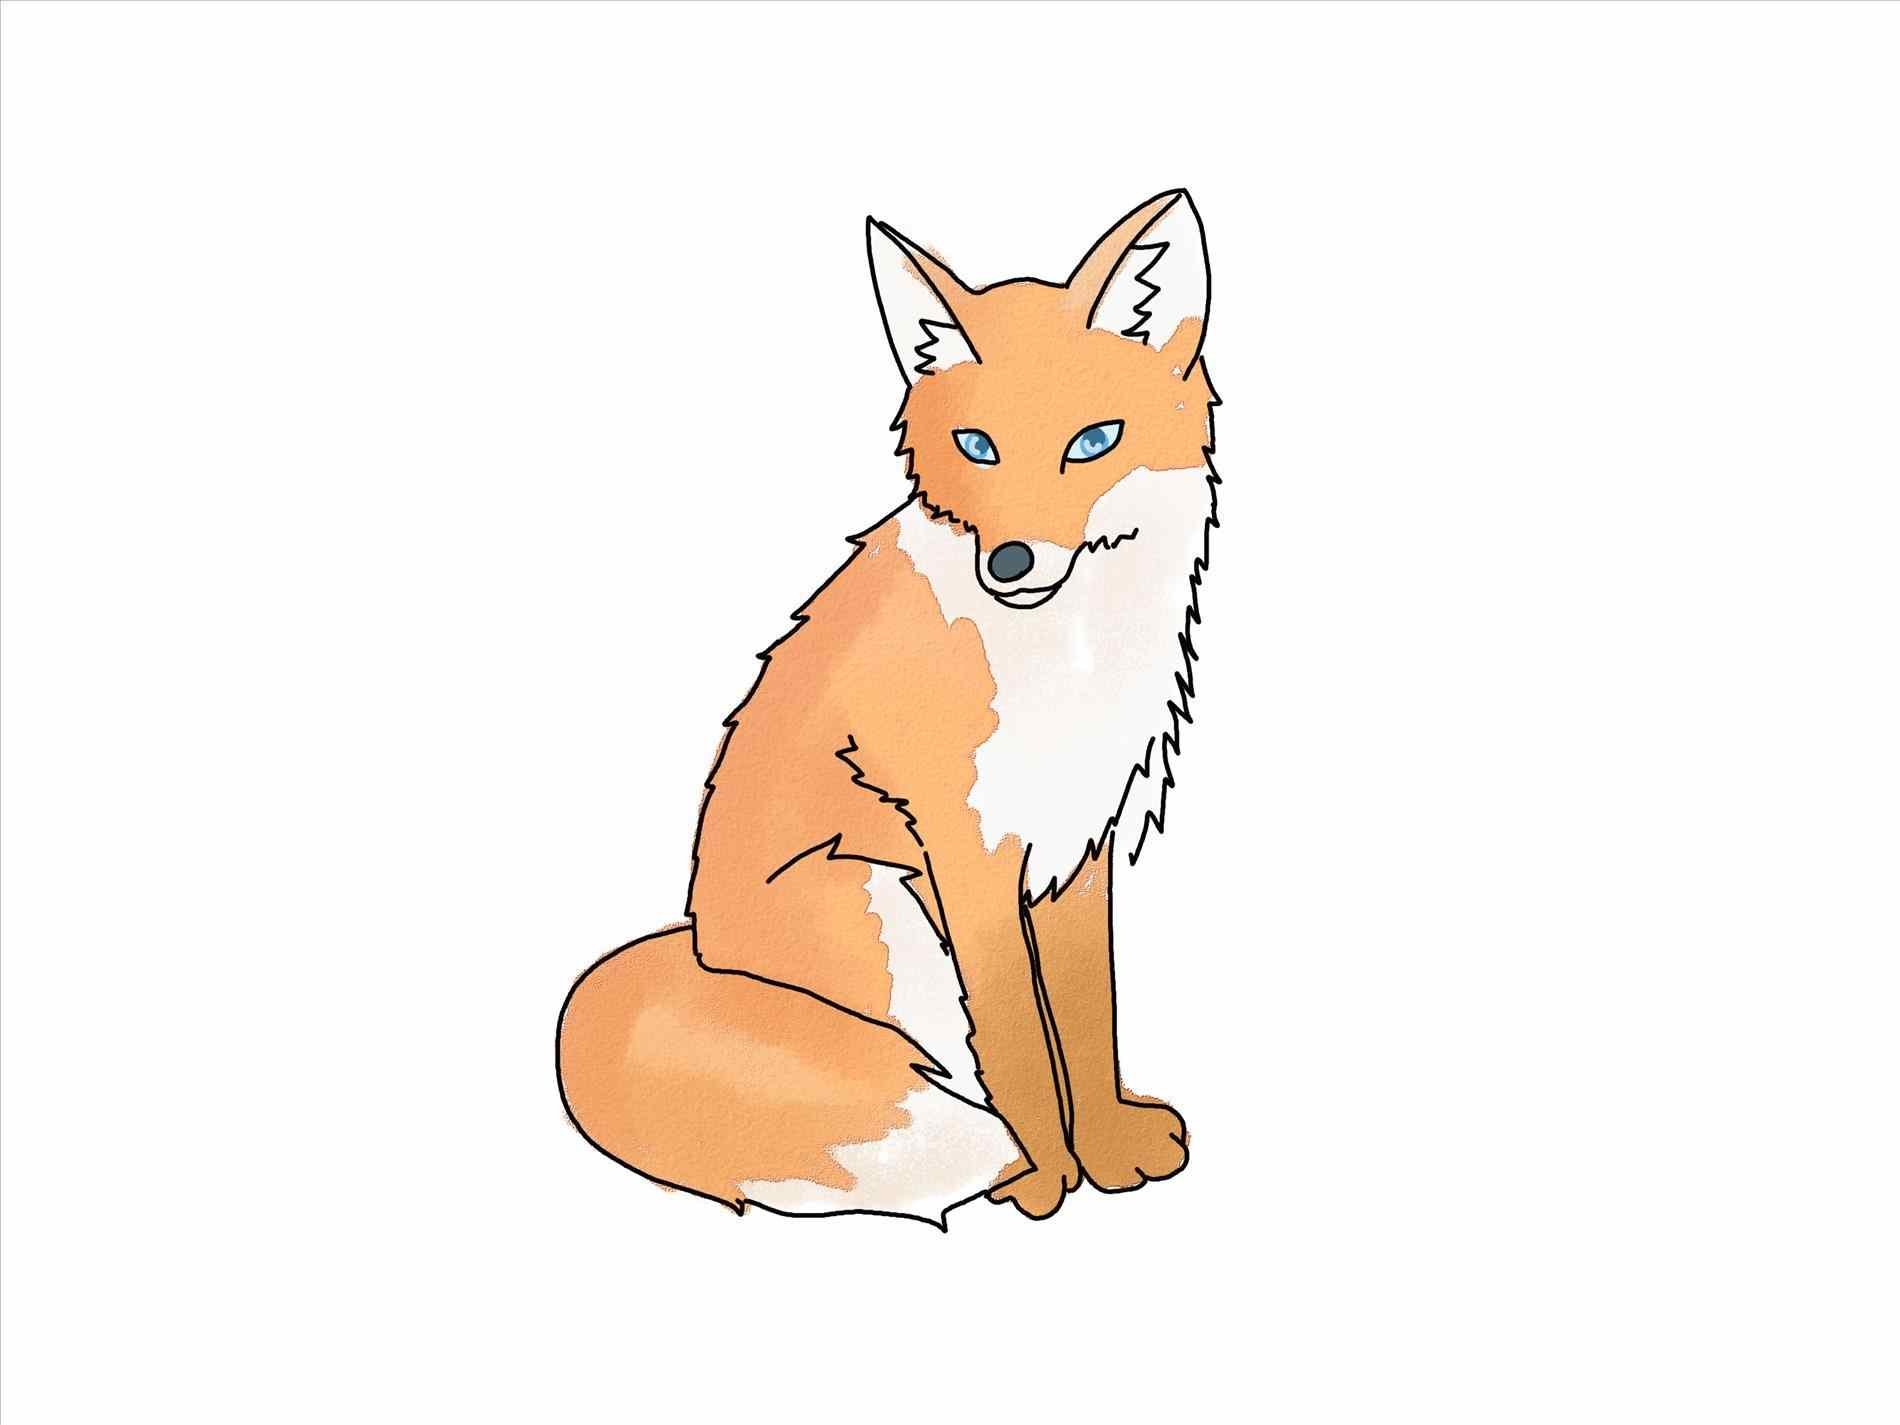 Animal pinterest es and. Anime clipart baby fox